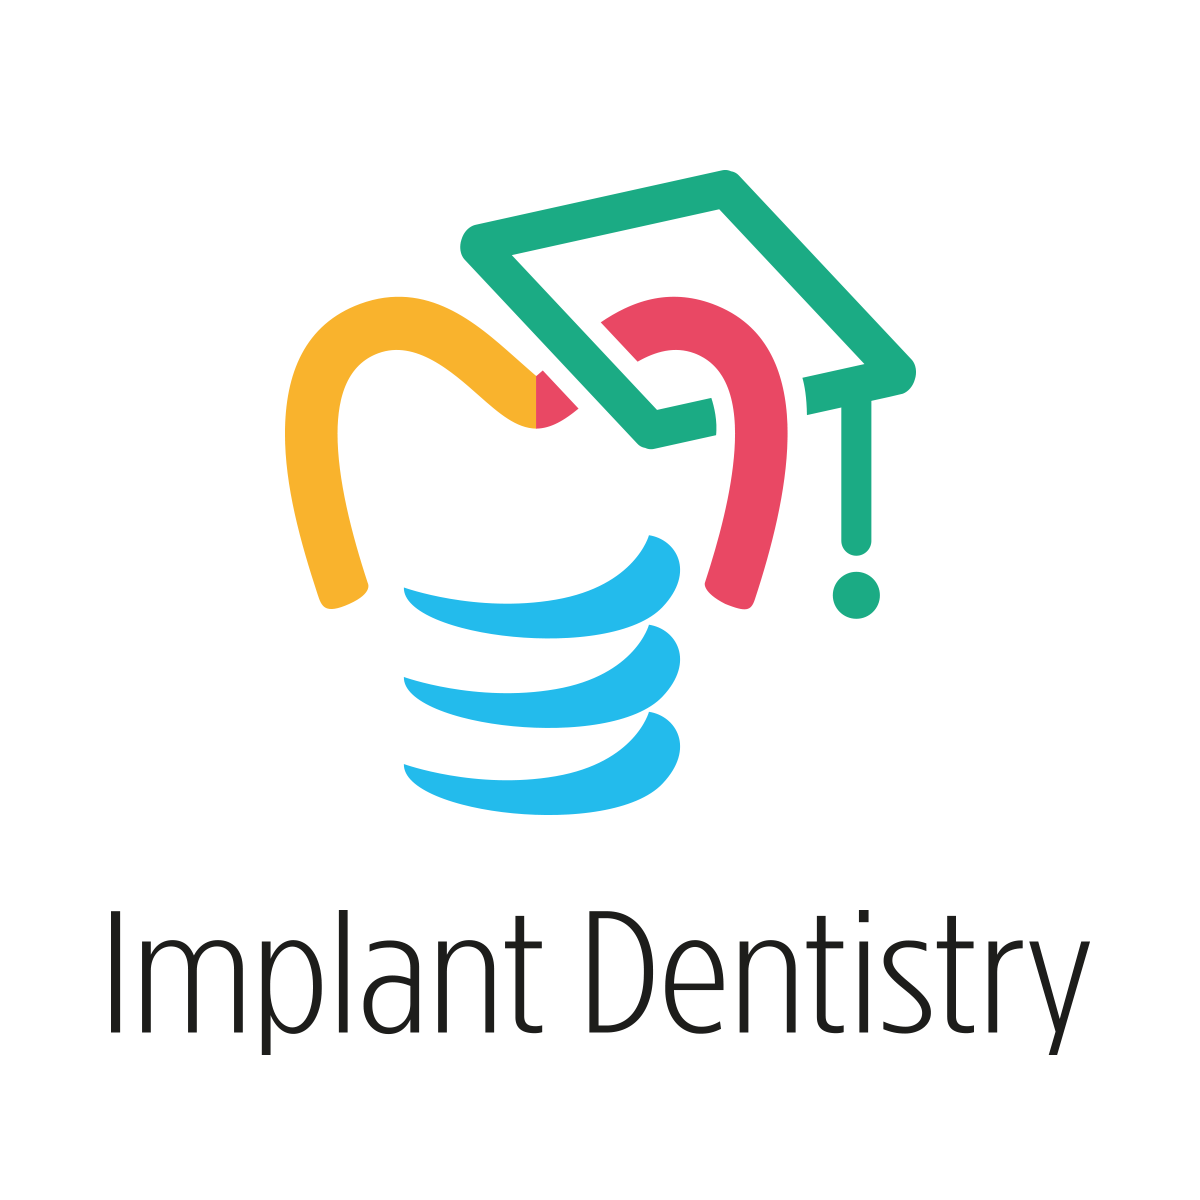 Implant Dentistry course image